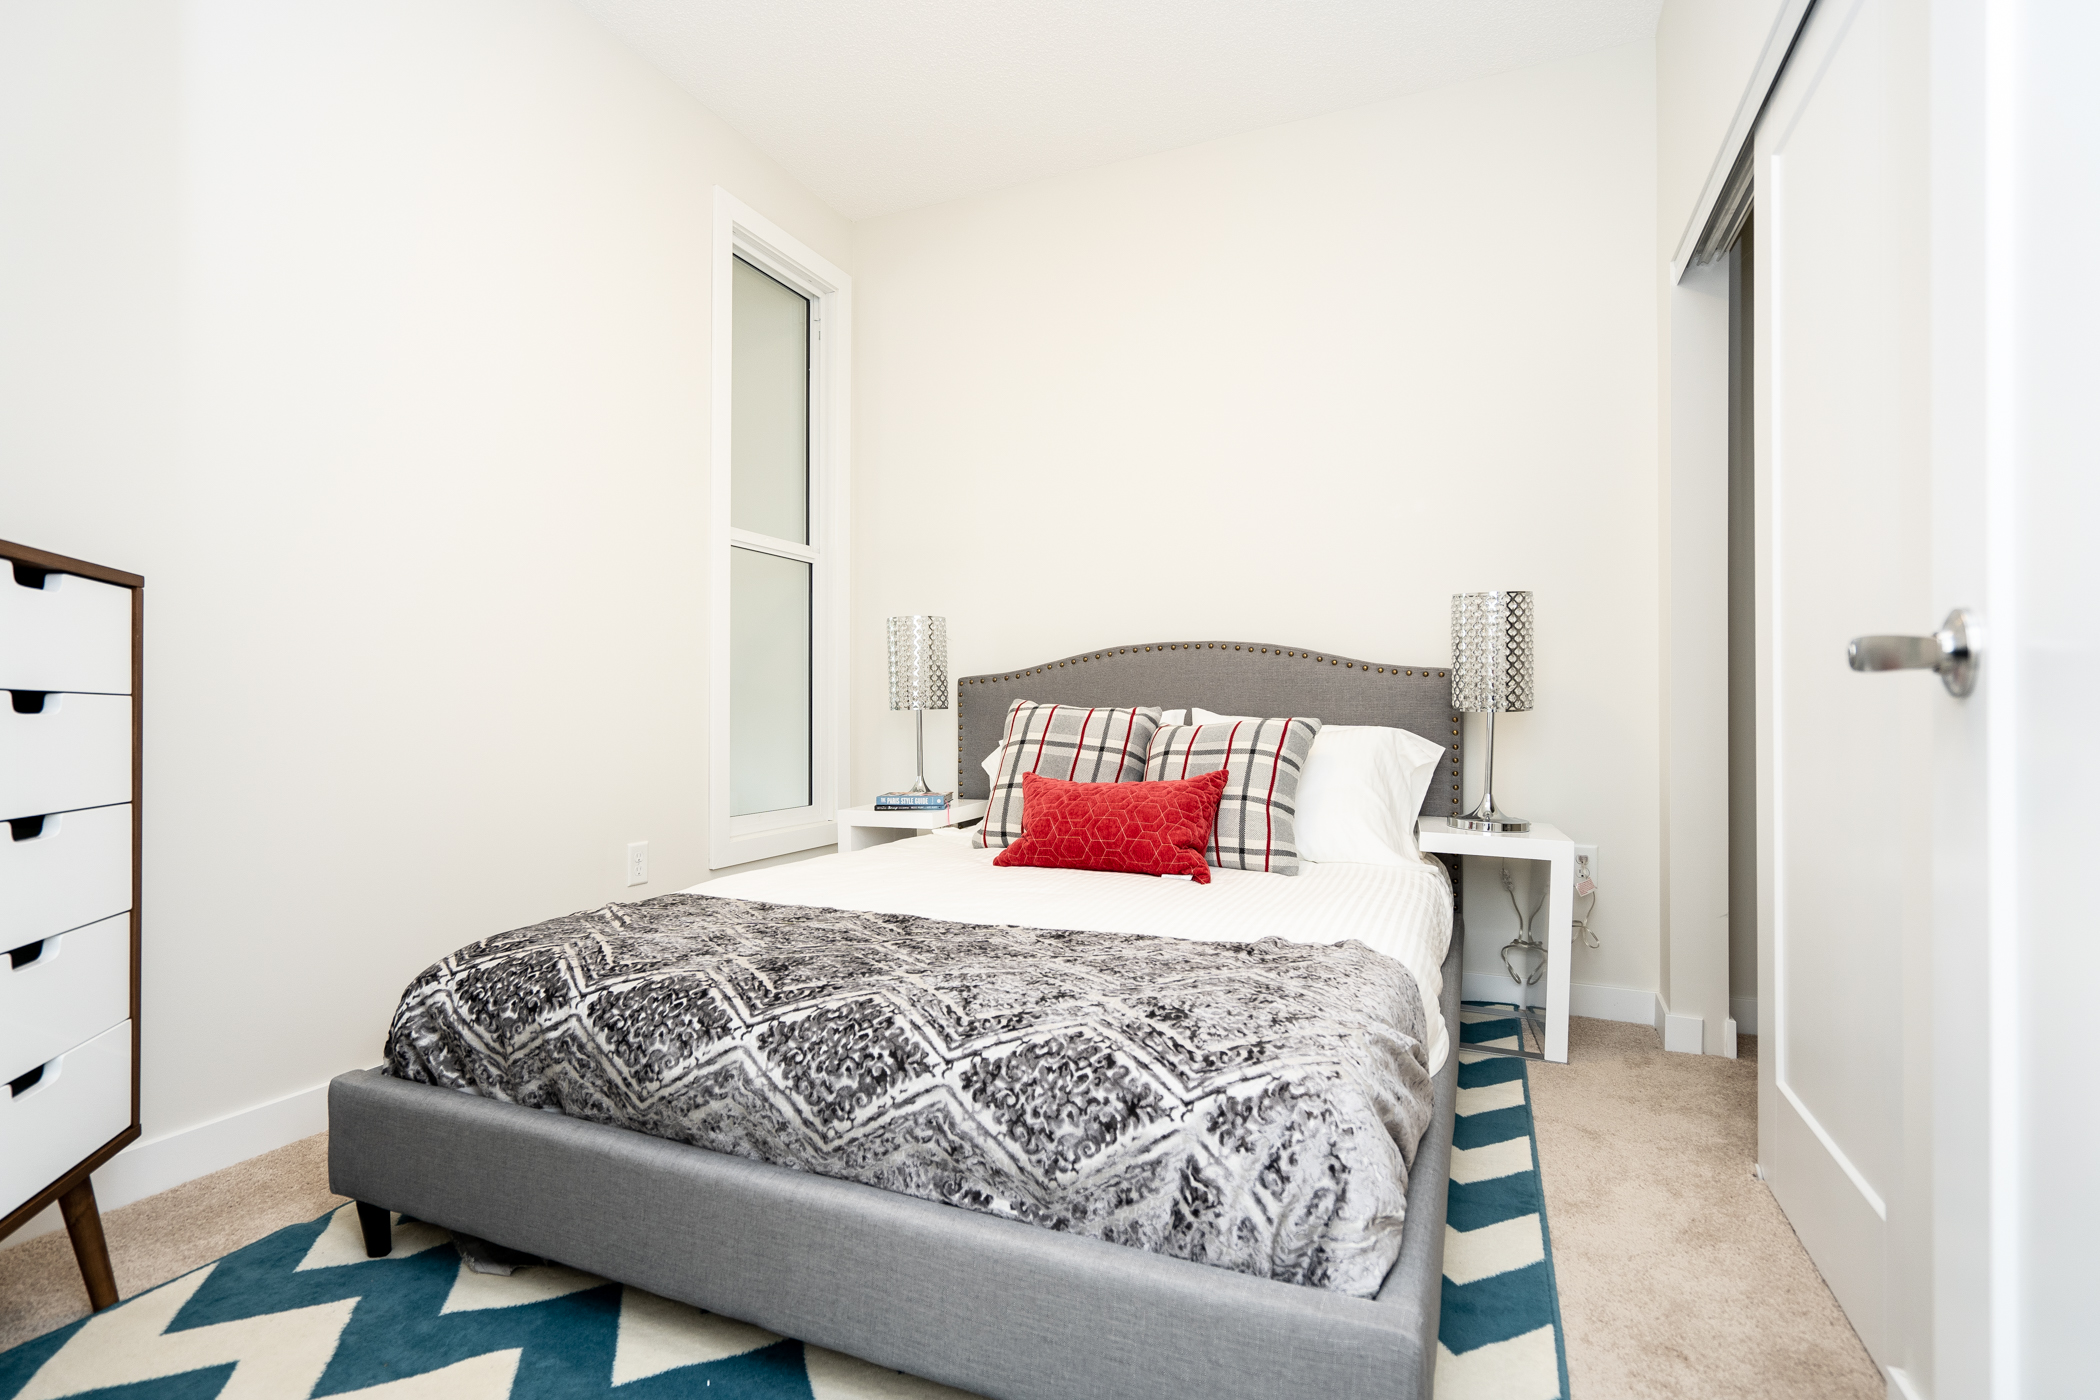 infrastructure winnipegmid-rise apartment residence bed interior